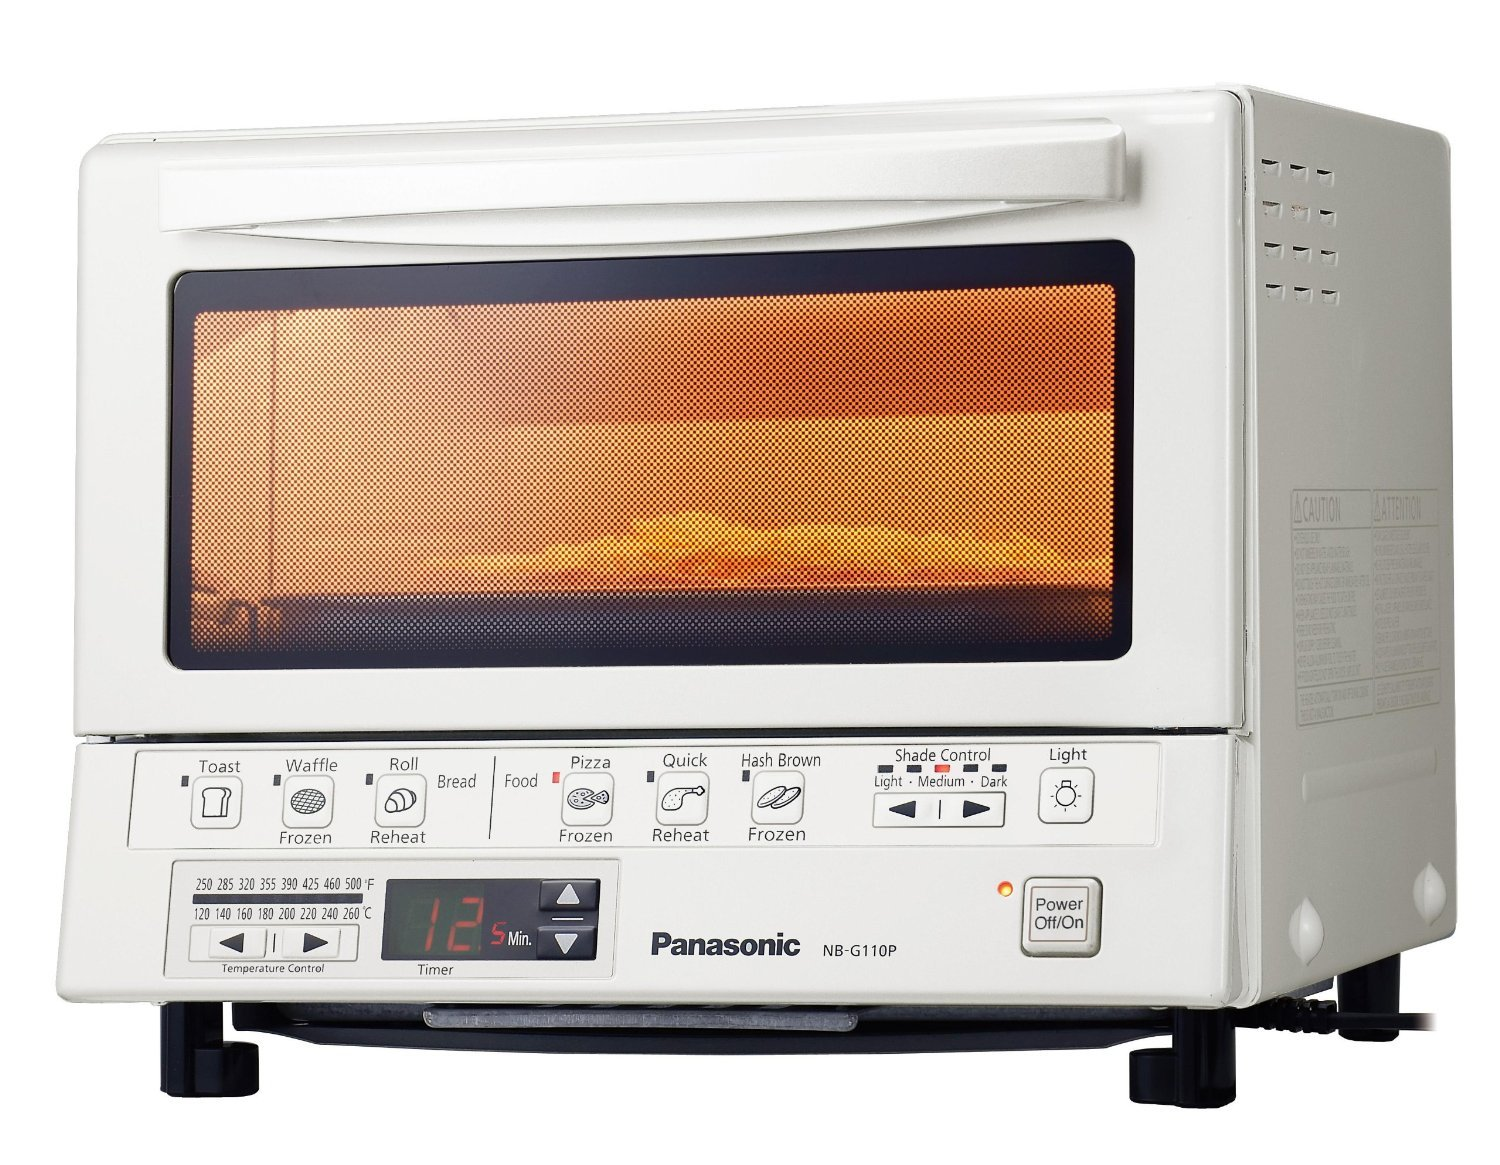 "Panasonic 1300 Watts FlashXpress Toaster Oven, Features Instant Double Infrared Heating, with 6 Illustrated Preset Buttons and Automatically Calculates Cooking Time, Includes a Digital Timer with Reminder Beep and a 9"" Square Inner Tray with Removable Crumb Tray, White"